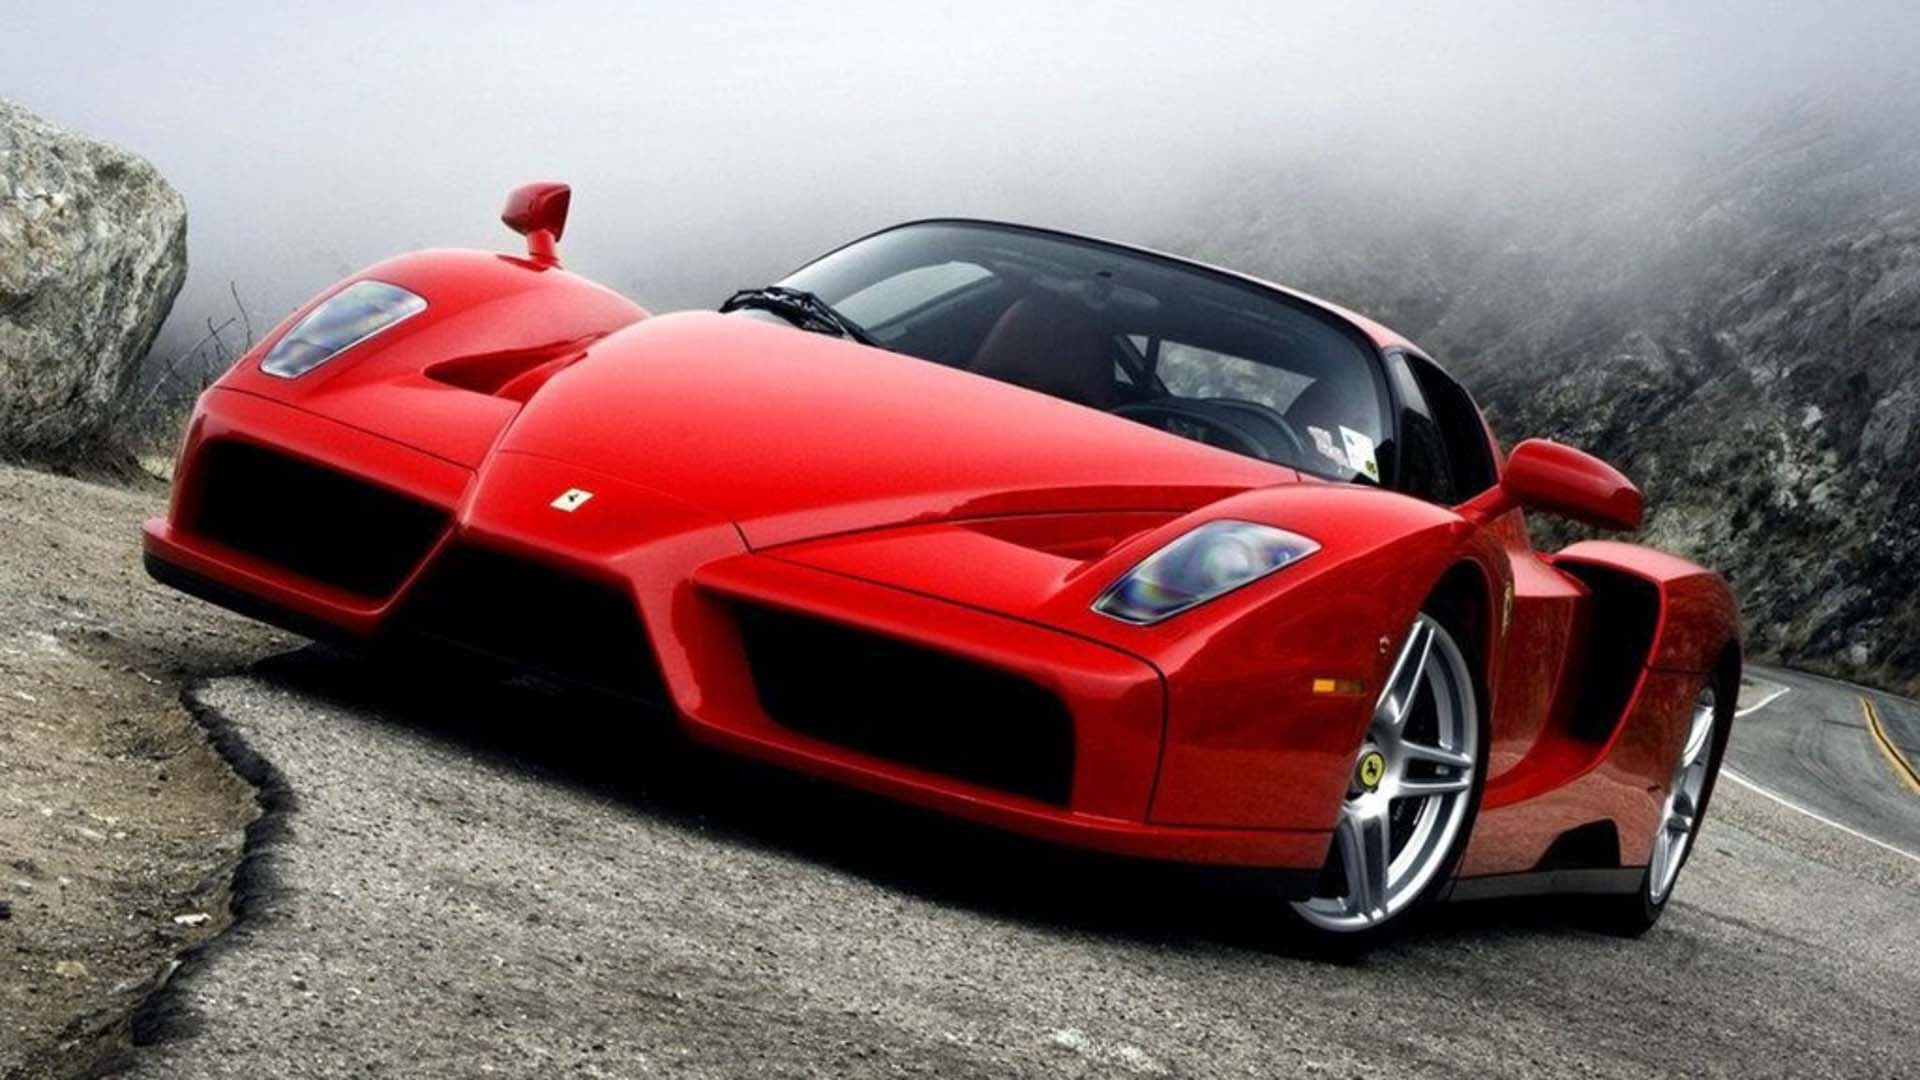 Wallpapers Hd Image Of Ferrari Cars On Download Car Full Pics For